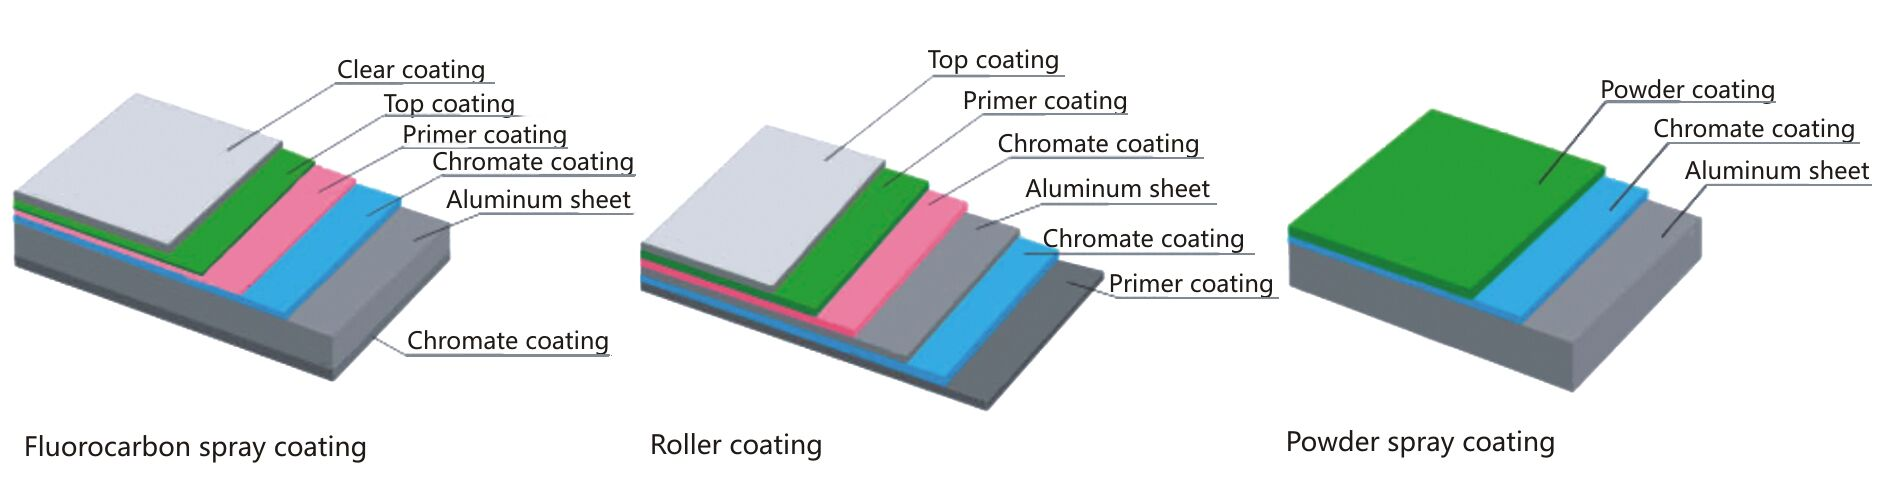 printing methods-PVDF spray coating, roller coating and powder coating.